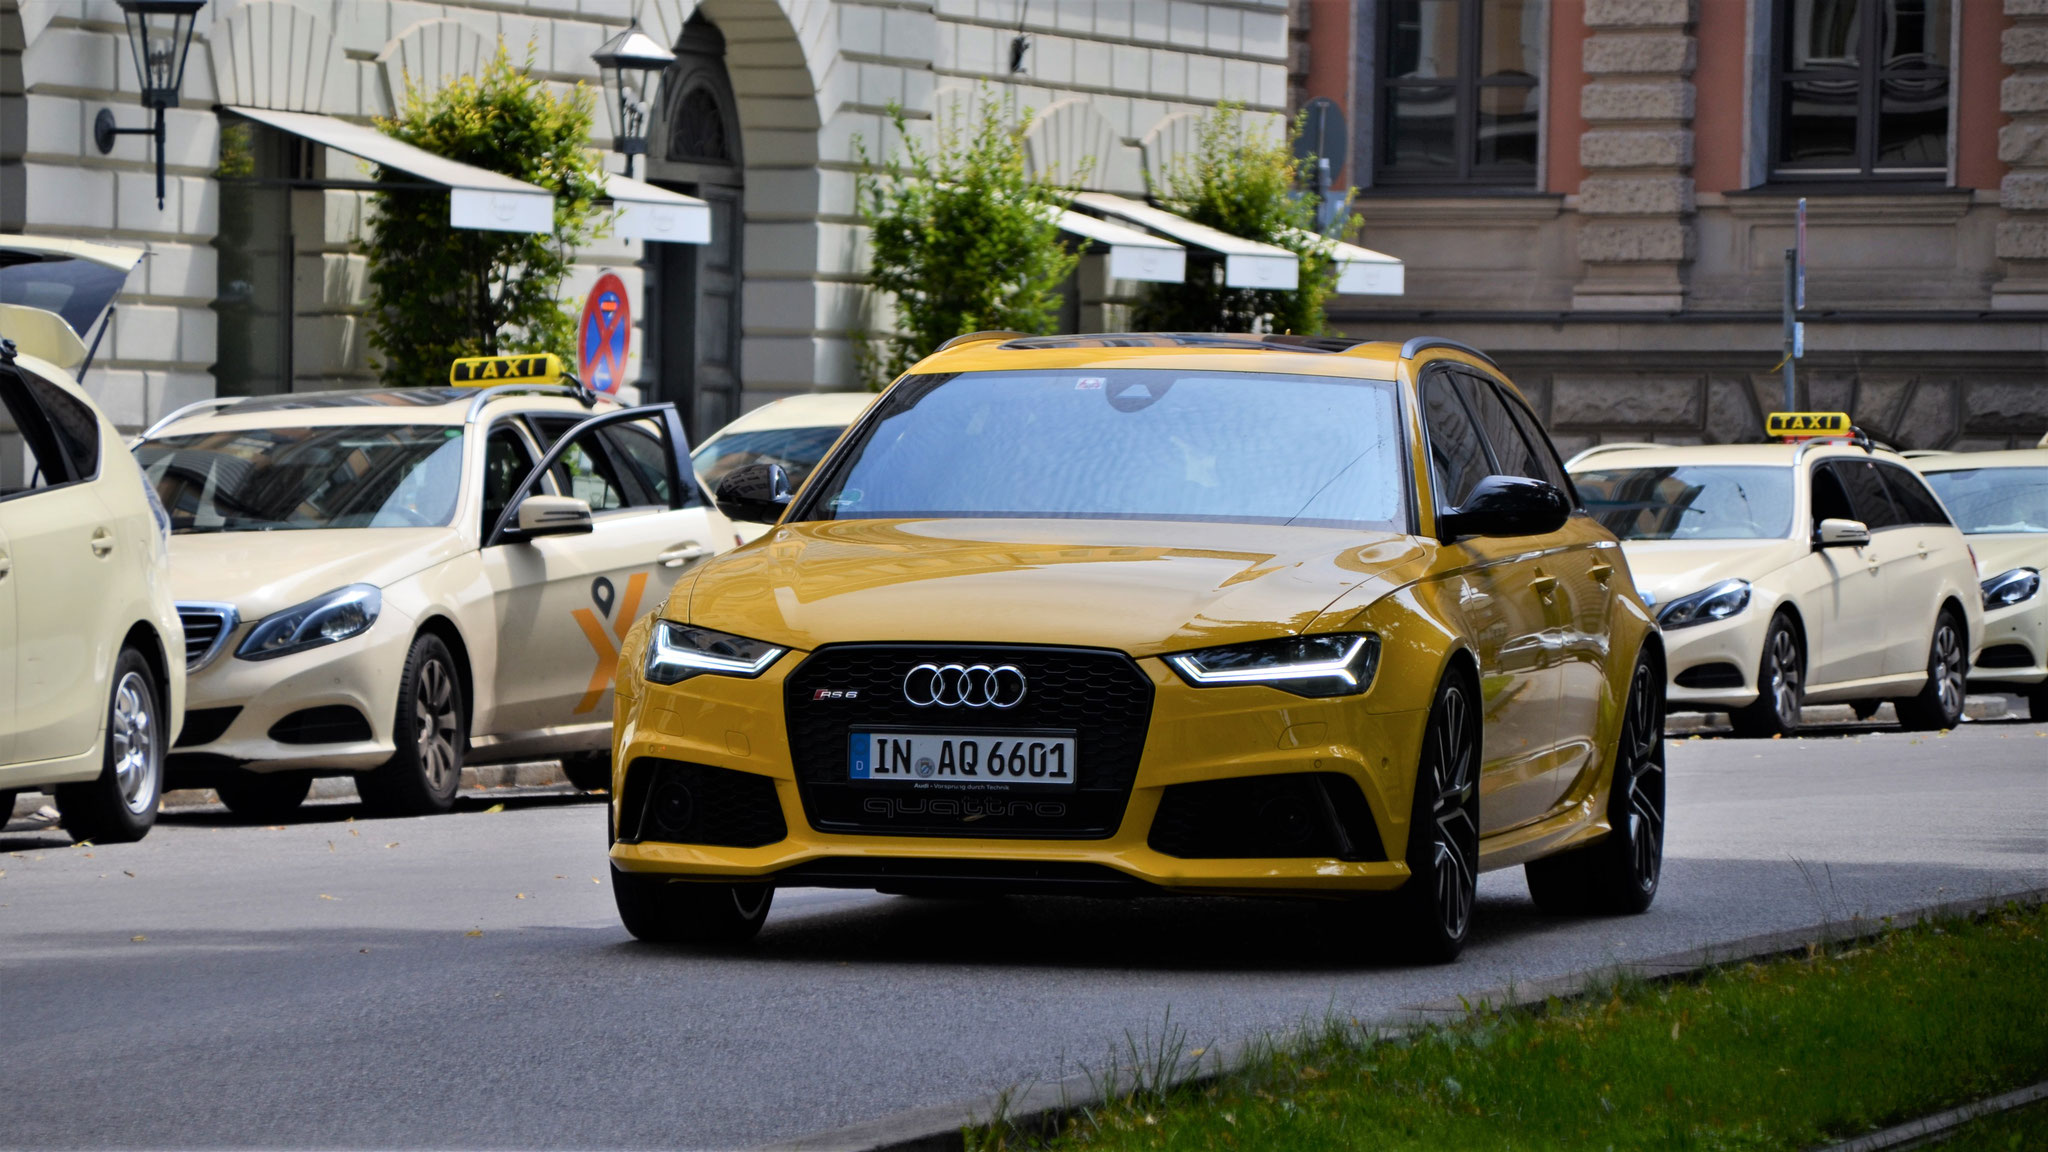 Audi RS6 - IN-AQ-6601